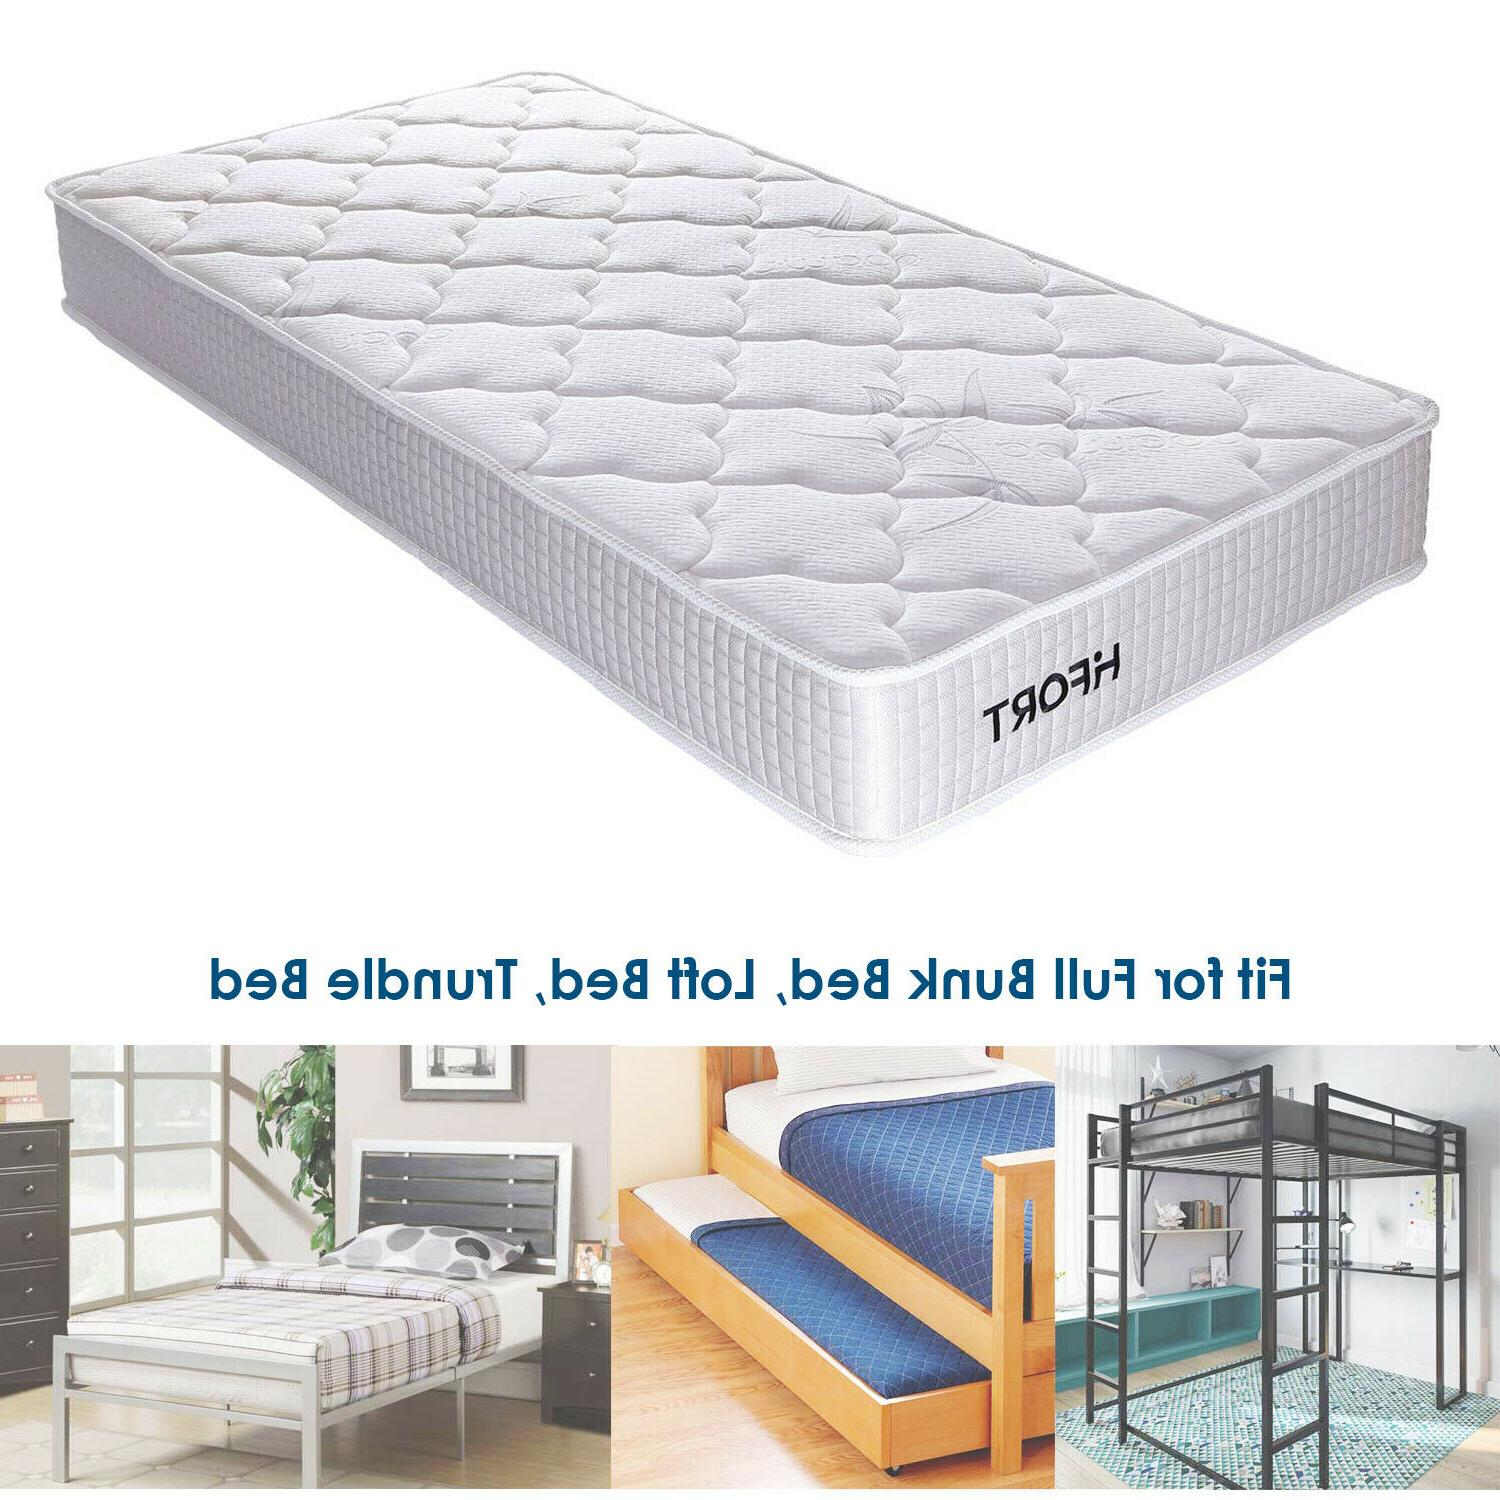 8 Size Bed Comfort US